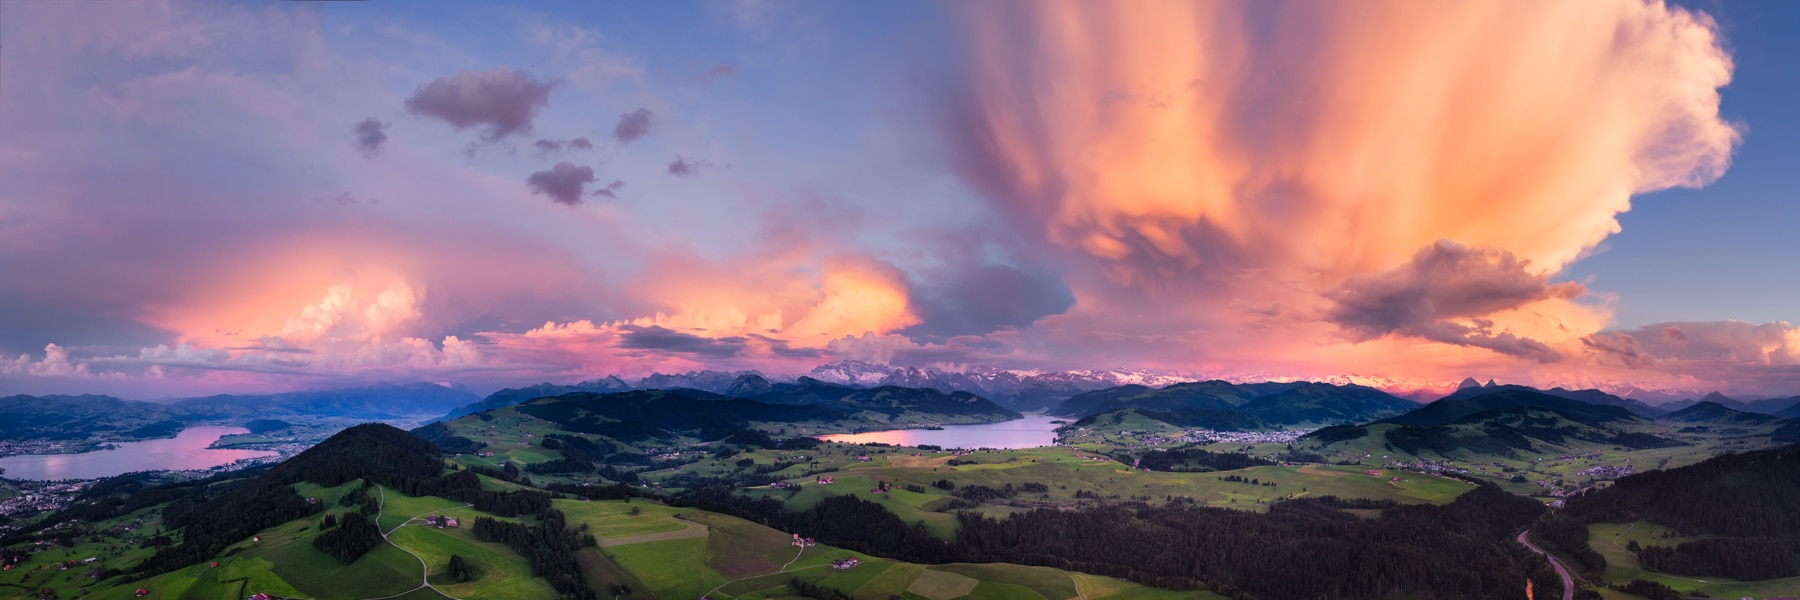 panoramic aerial photograph of major thunderstorm cells over central Schwyz